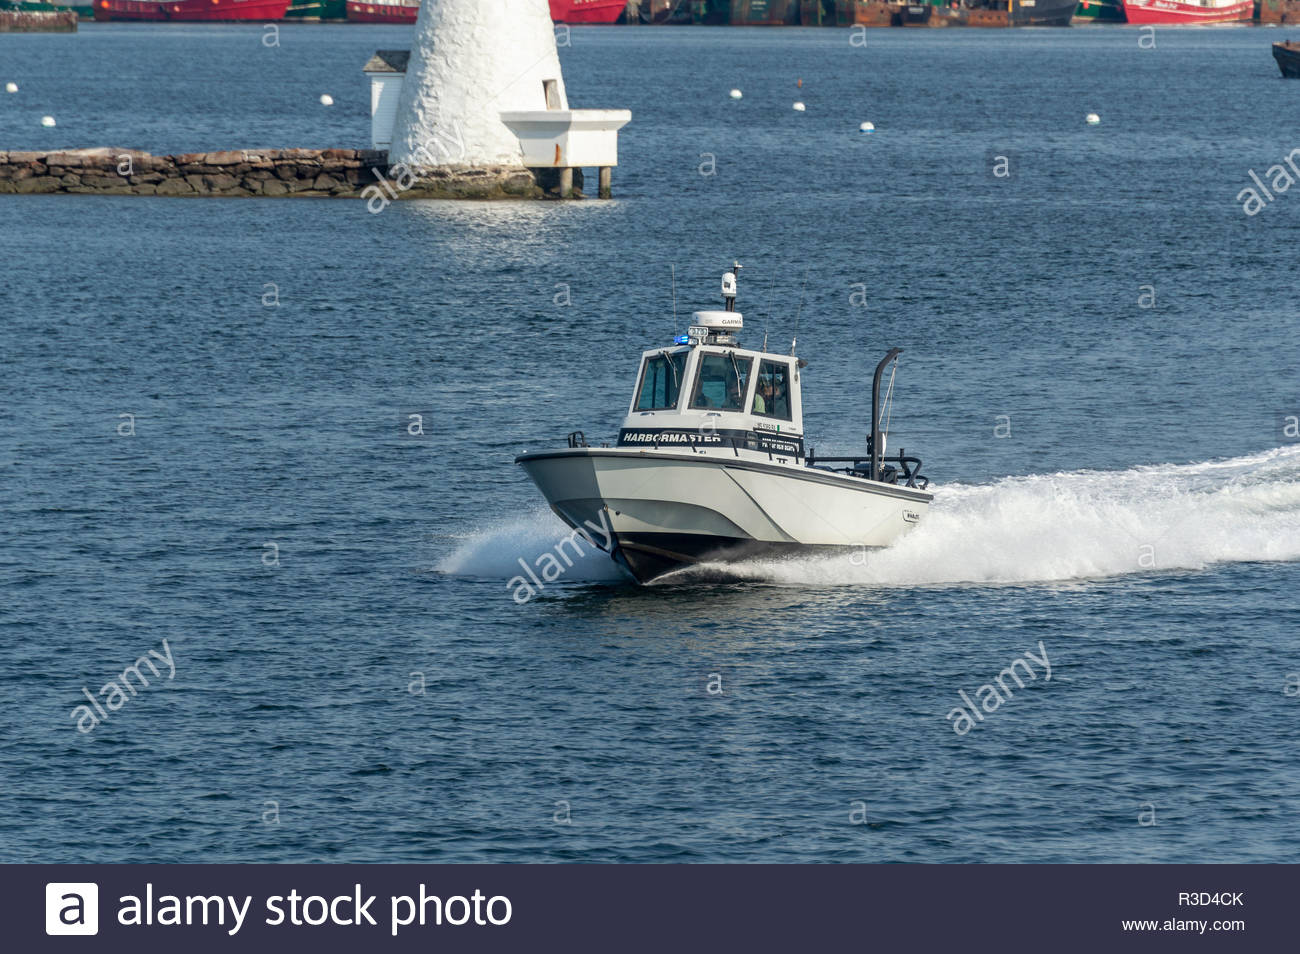 New Bedford, Massachusetts, USA - May 25, 2018: Port of New Bedford Harbormaster patrol boat heading for Buzzards Bay - Stock Image